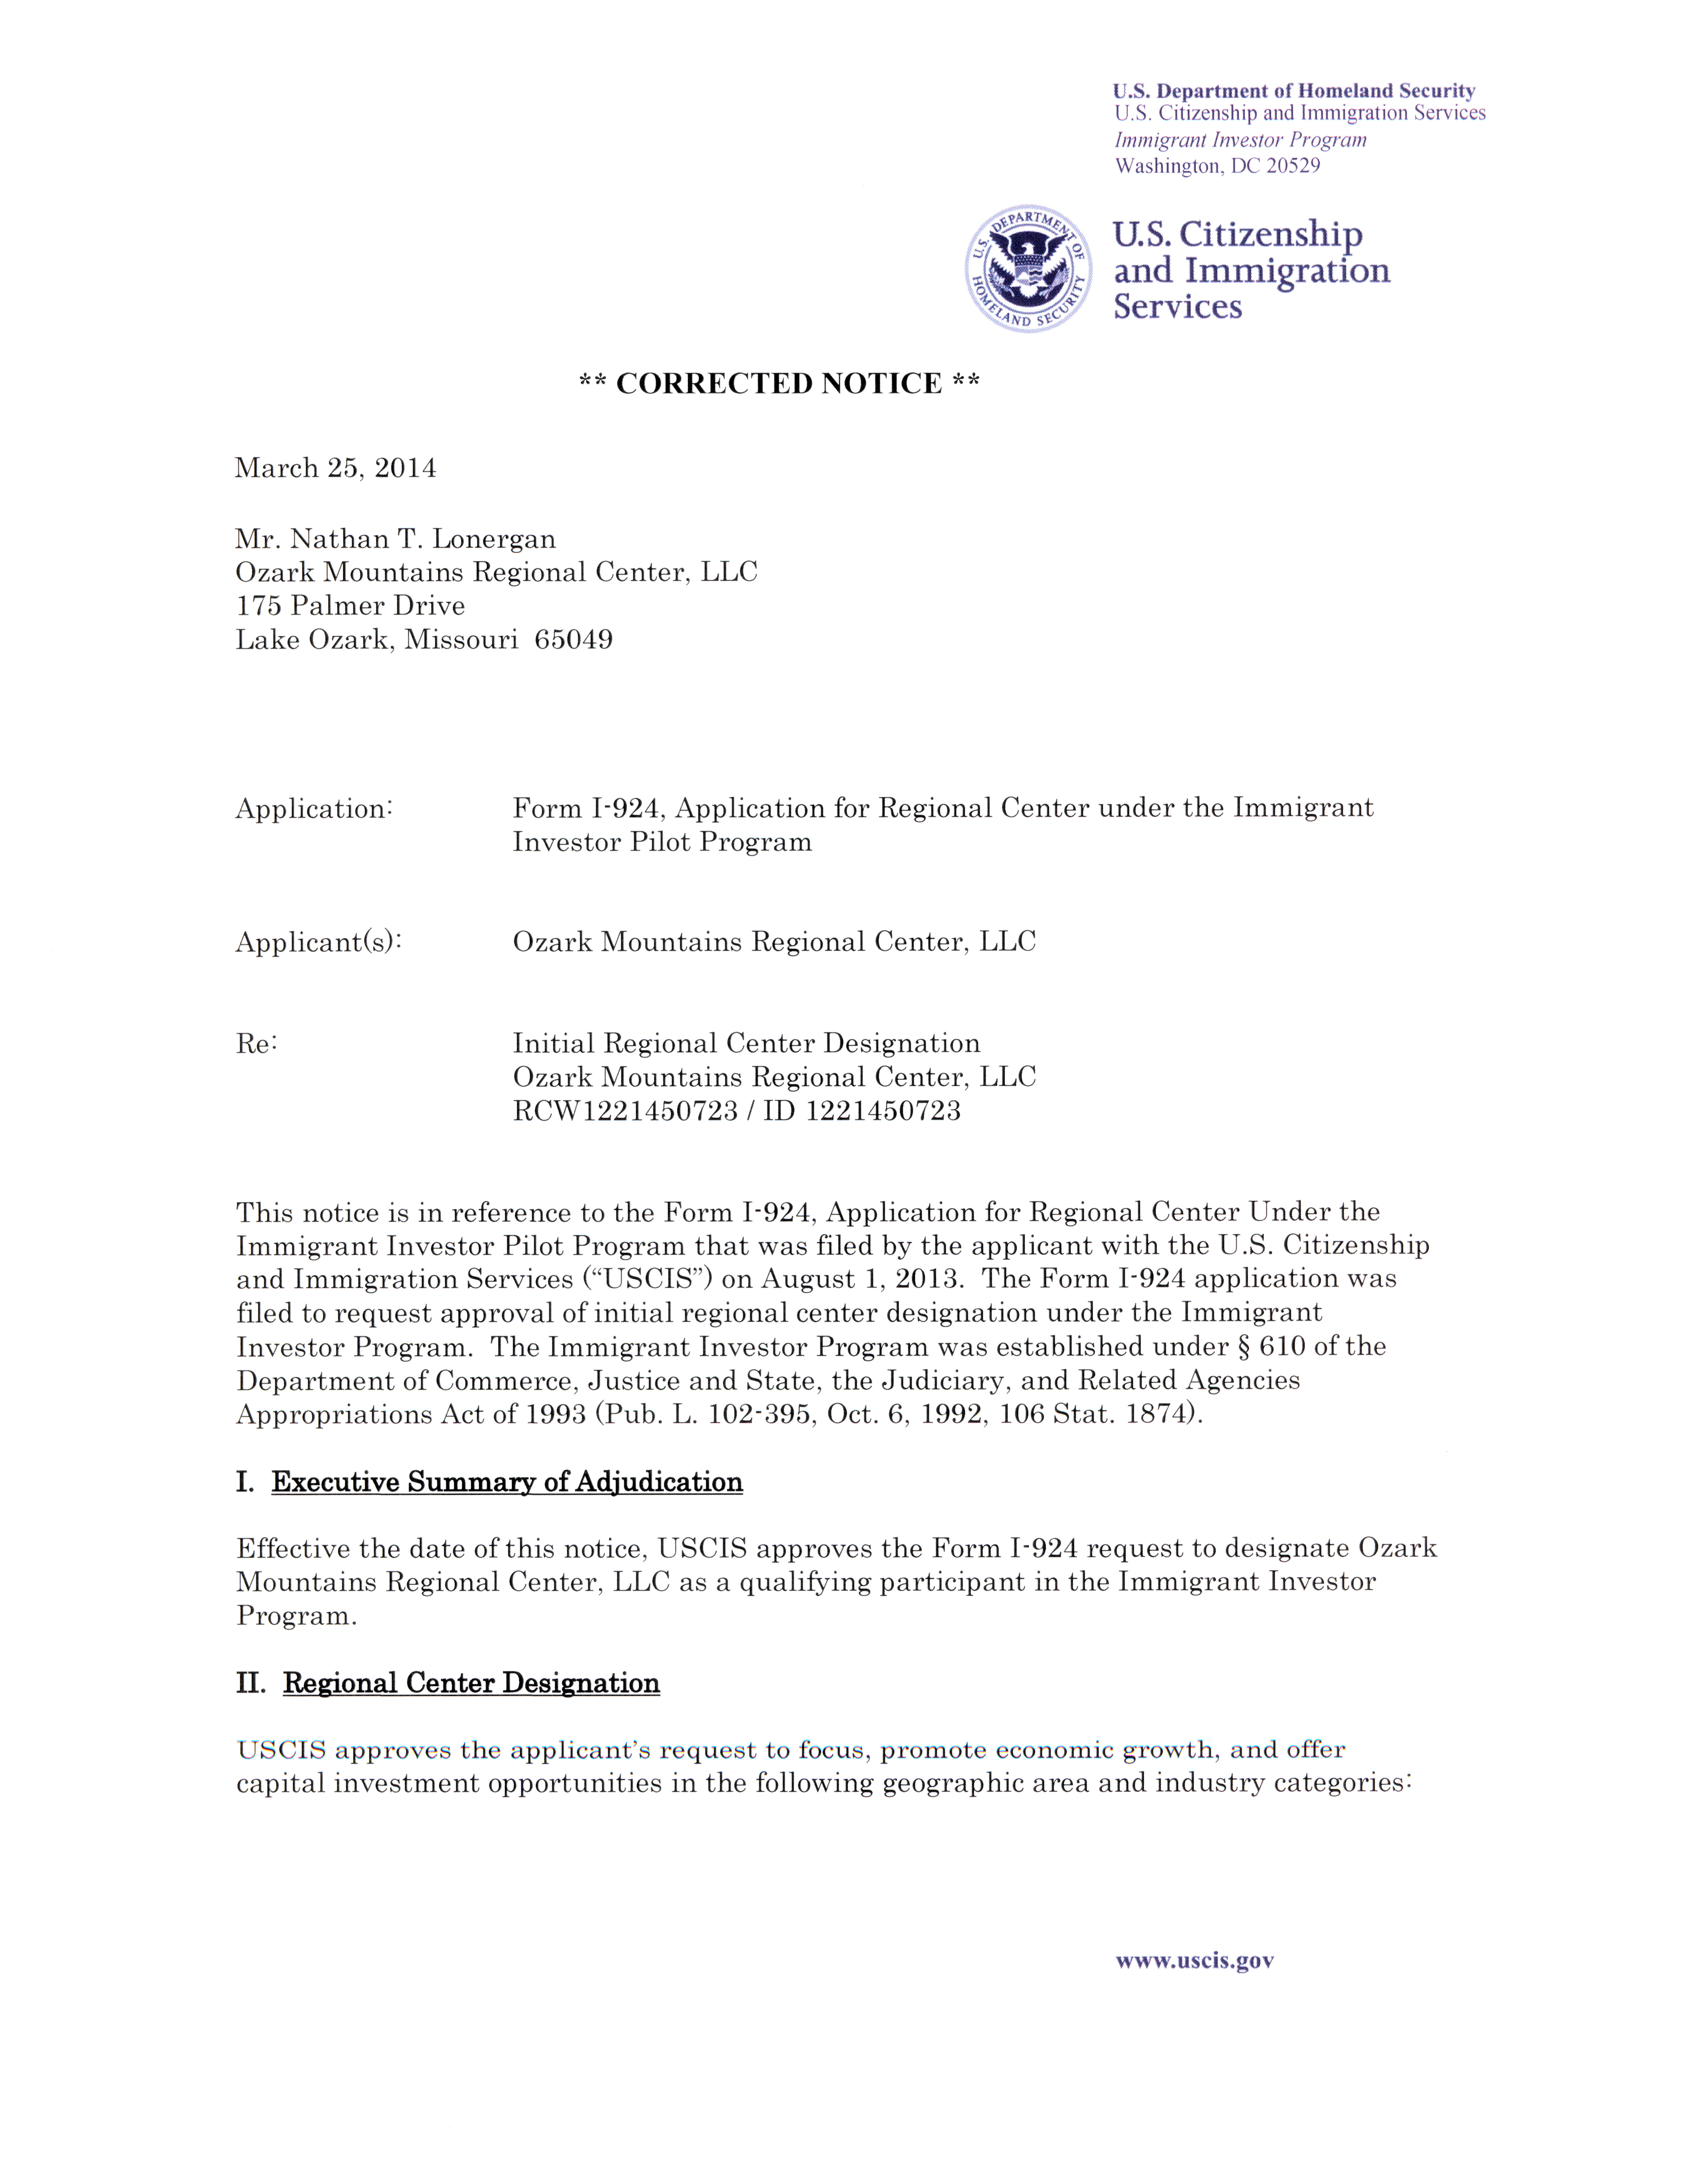 Uscis letter carnavalsmusic uscis letter spiritdancerdesigns Image collections